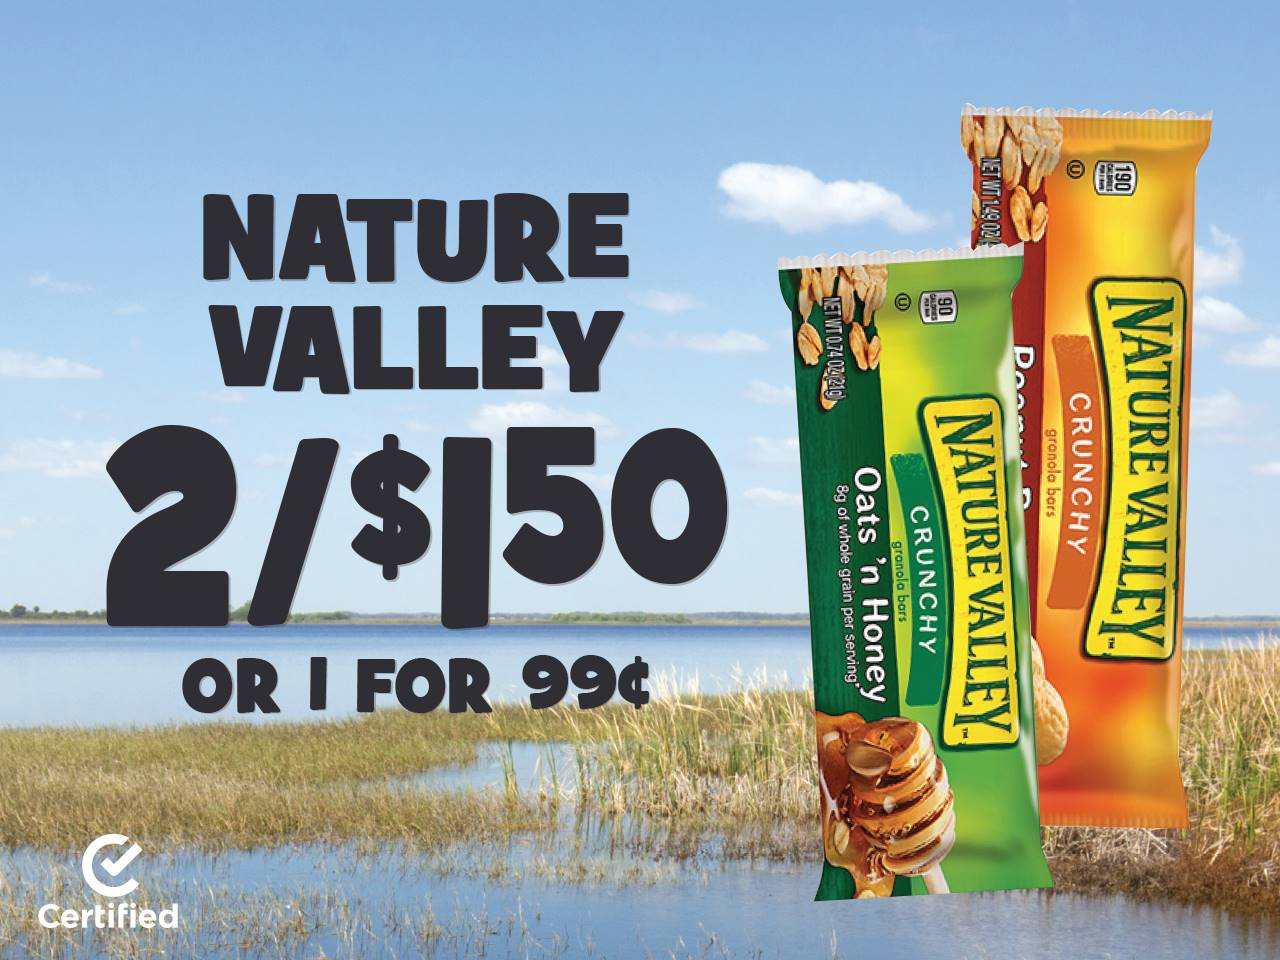 Nature Valley 2 for $1.50 or 1 for $.99